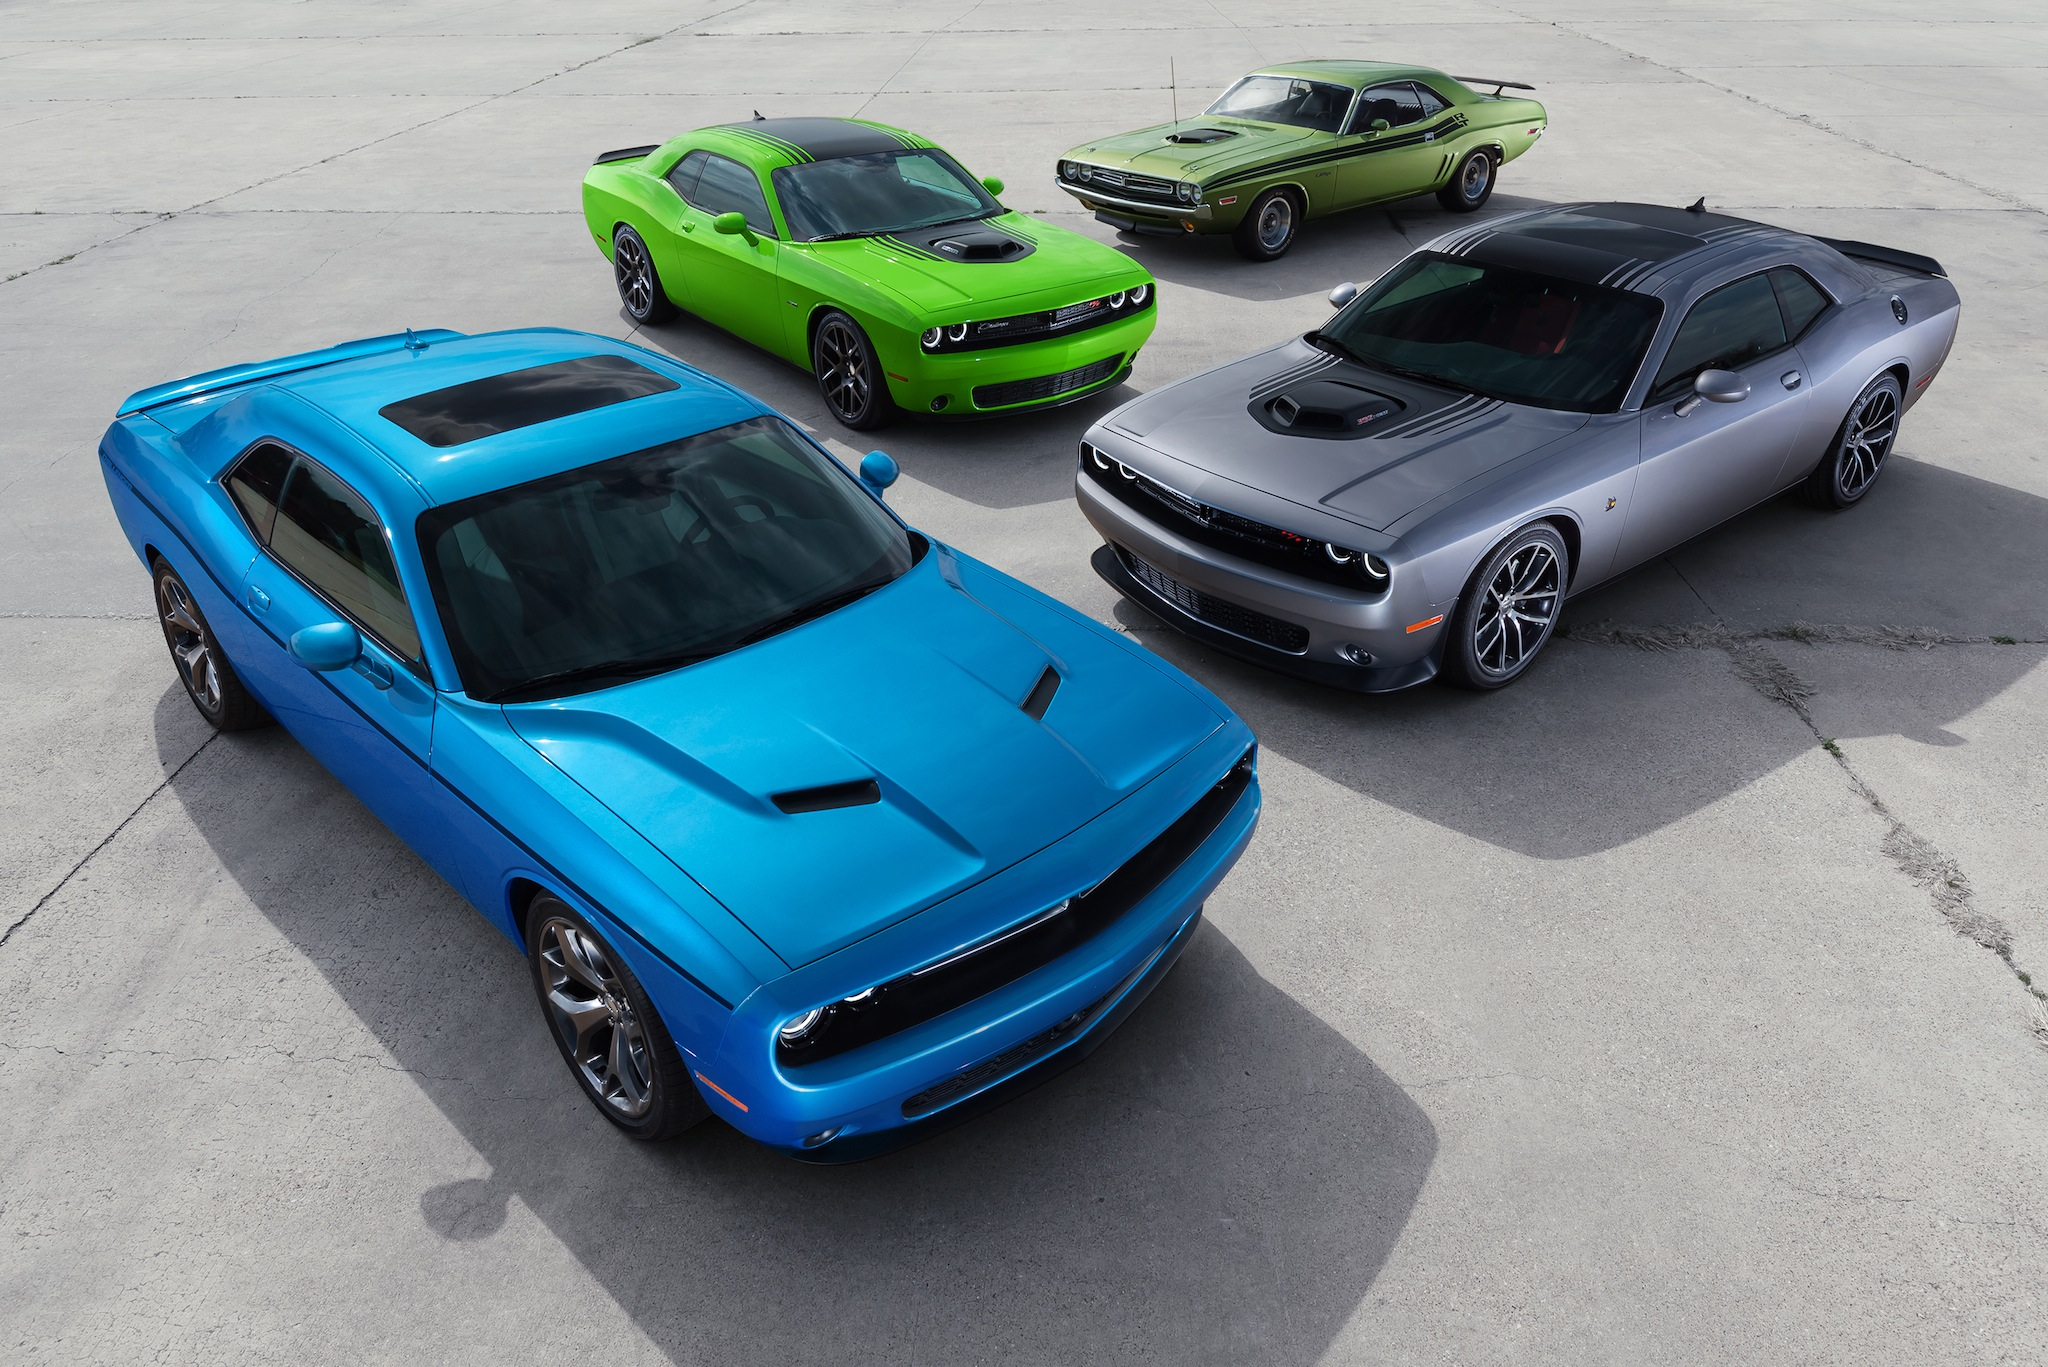 From Front to back: 2015 Dodge Challenger SXT, 2015 Challenger 3